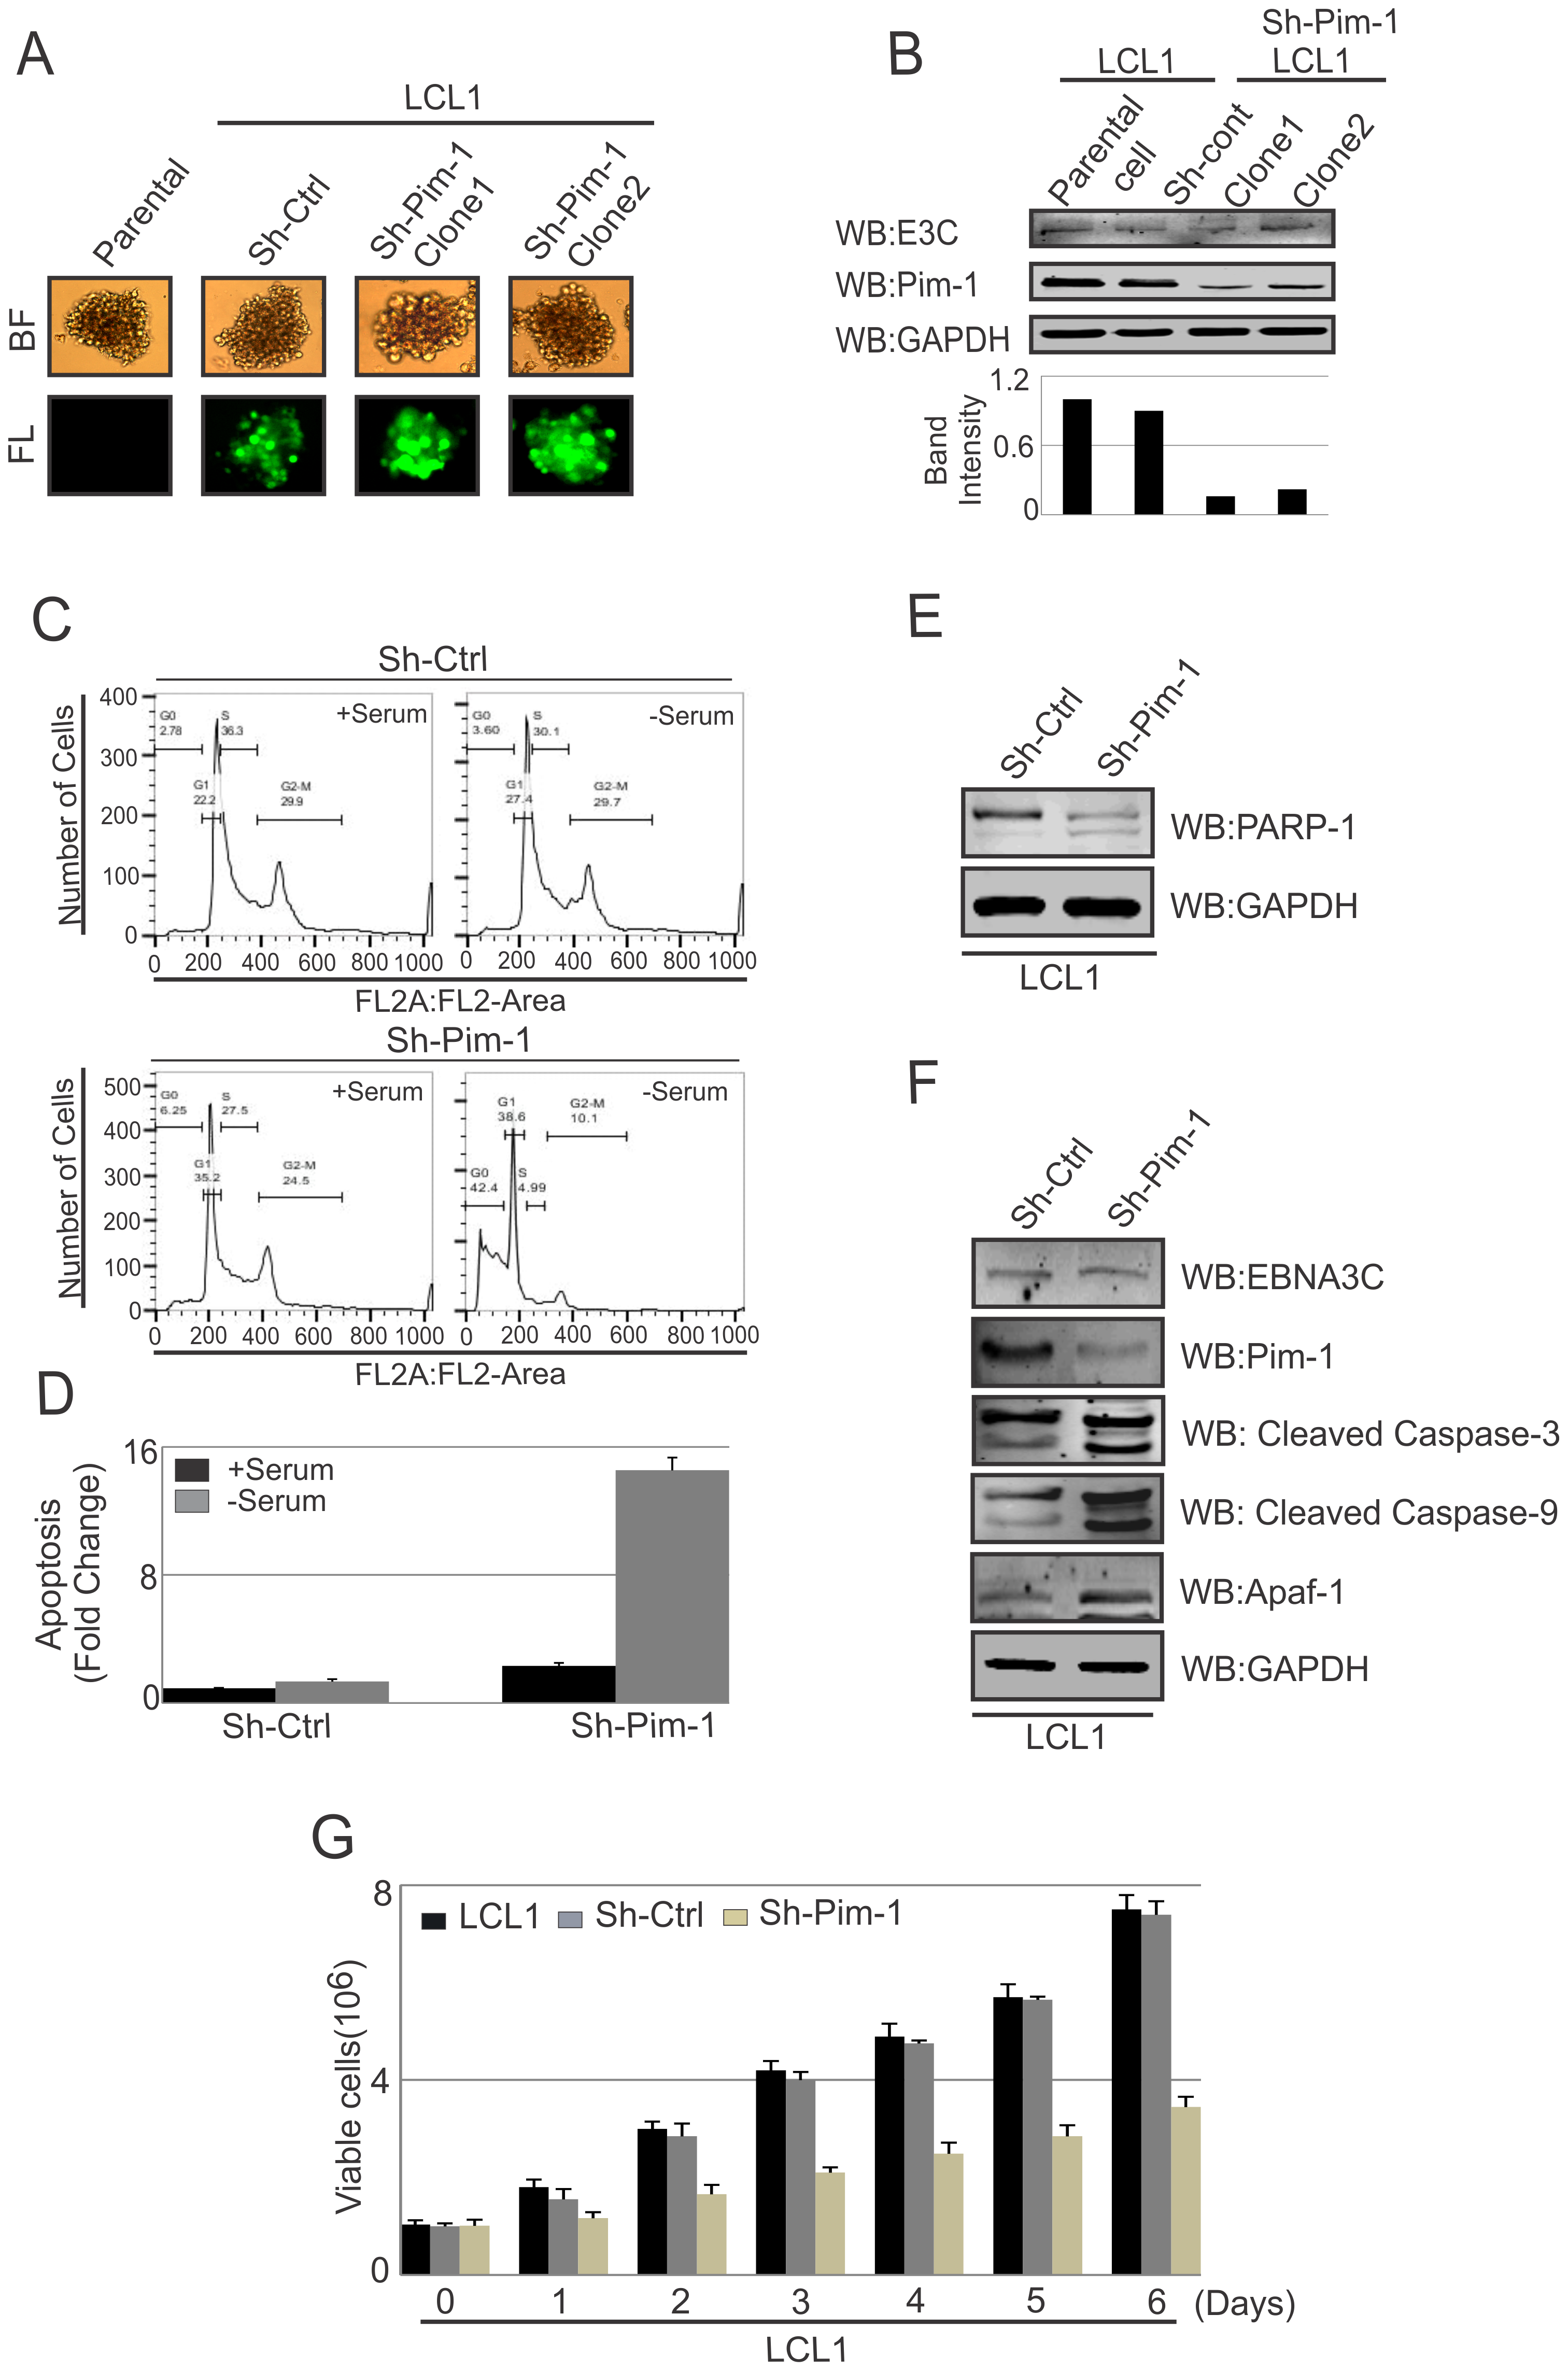 Pim-1 silencing by sh-RNA sensitizes EBV transformed lymphoblastoid cells by induction of the intrinsic apoptosis signaling pathway.